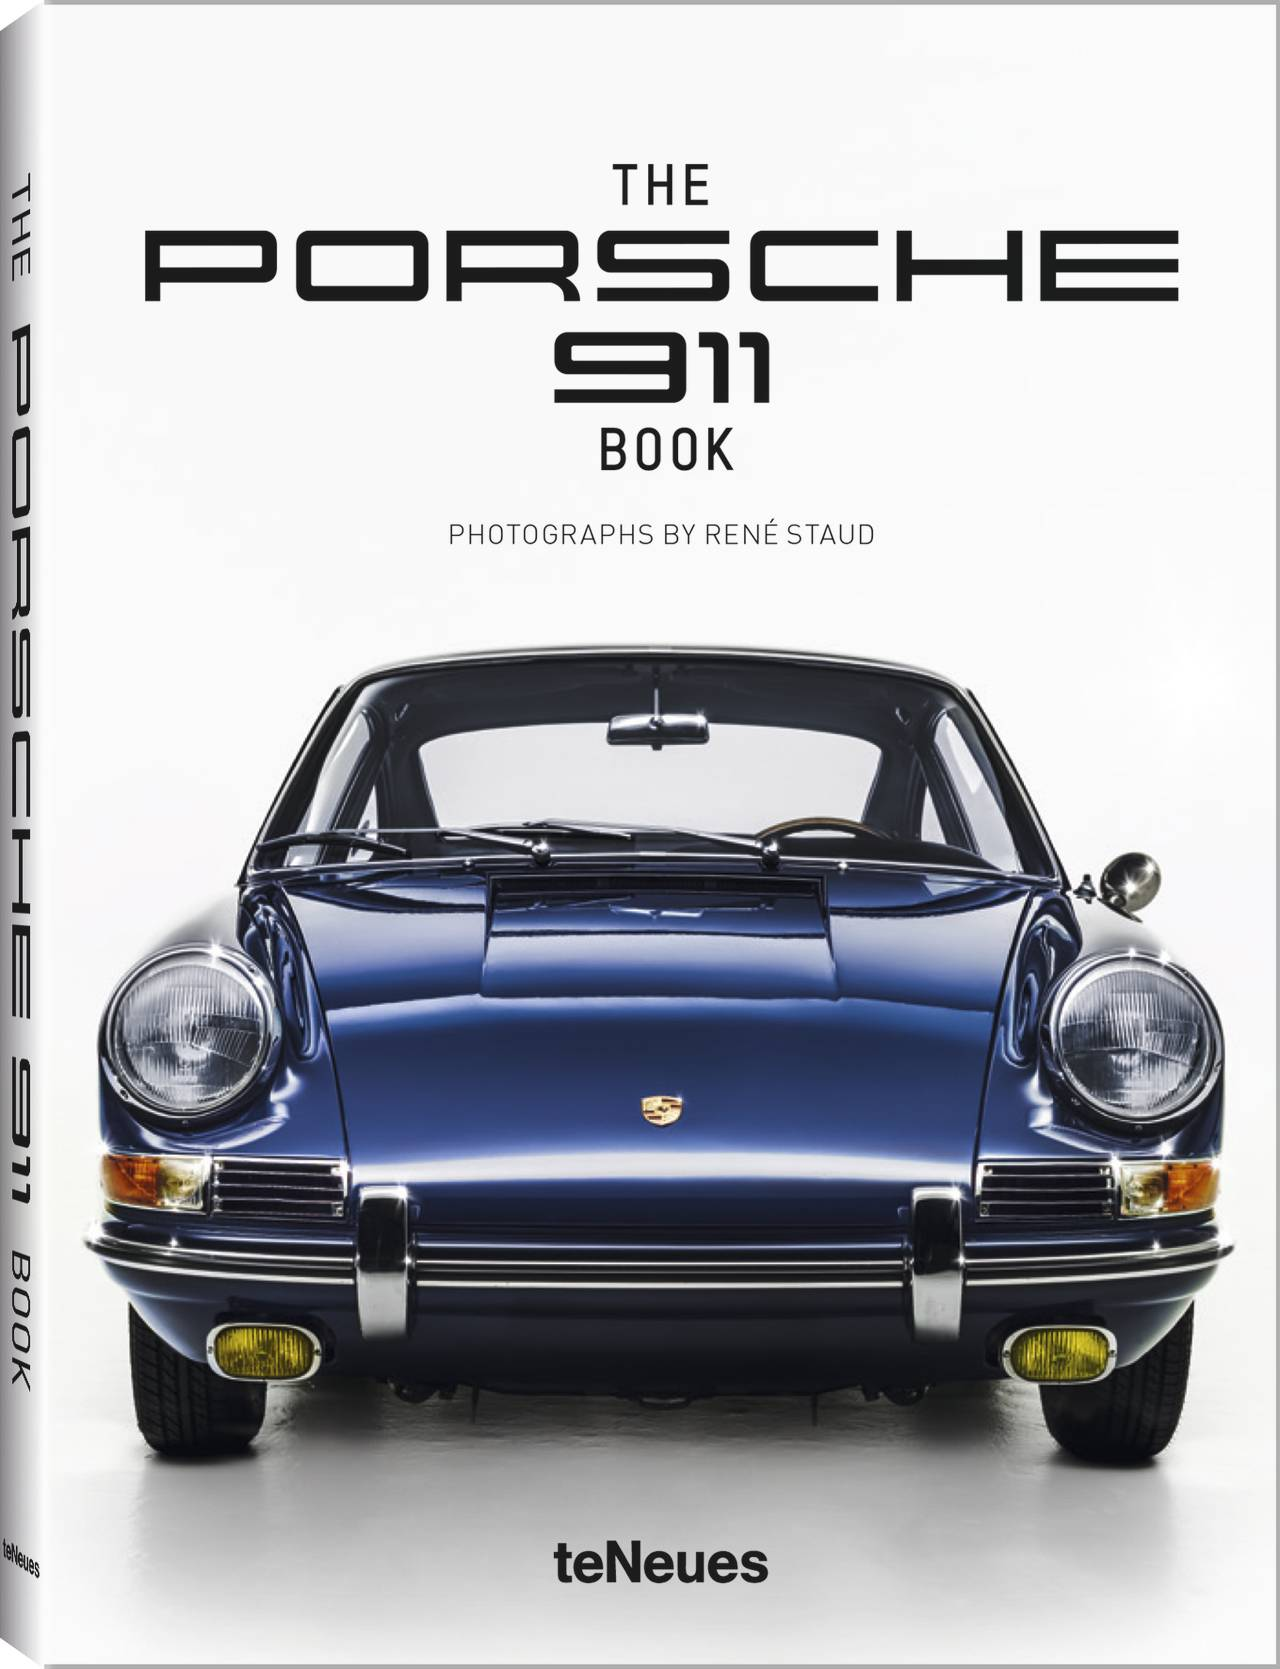 © The Porsche 911 Book, Small Flexicover Edition, Photographs by René Staud, published by teNeues, € 9,99, www.teneues.com. Photo © Staud Studios GmbH, Leonberg, Germany. All rights reserved.